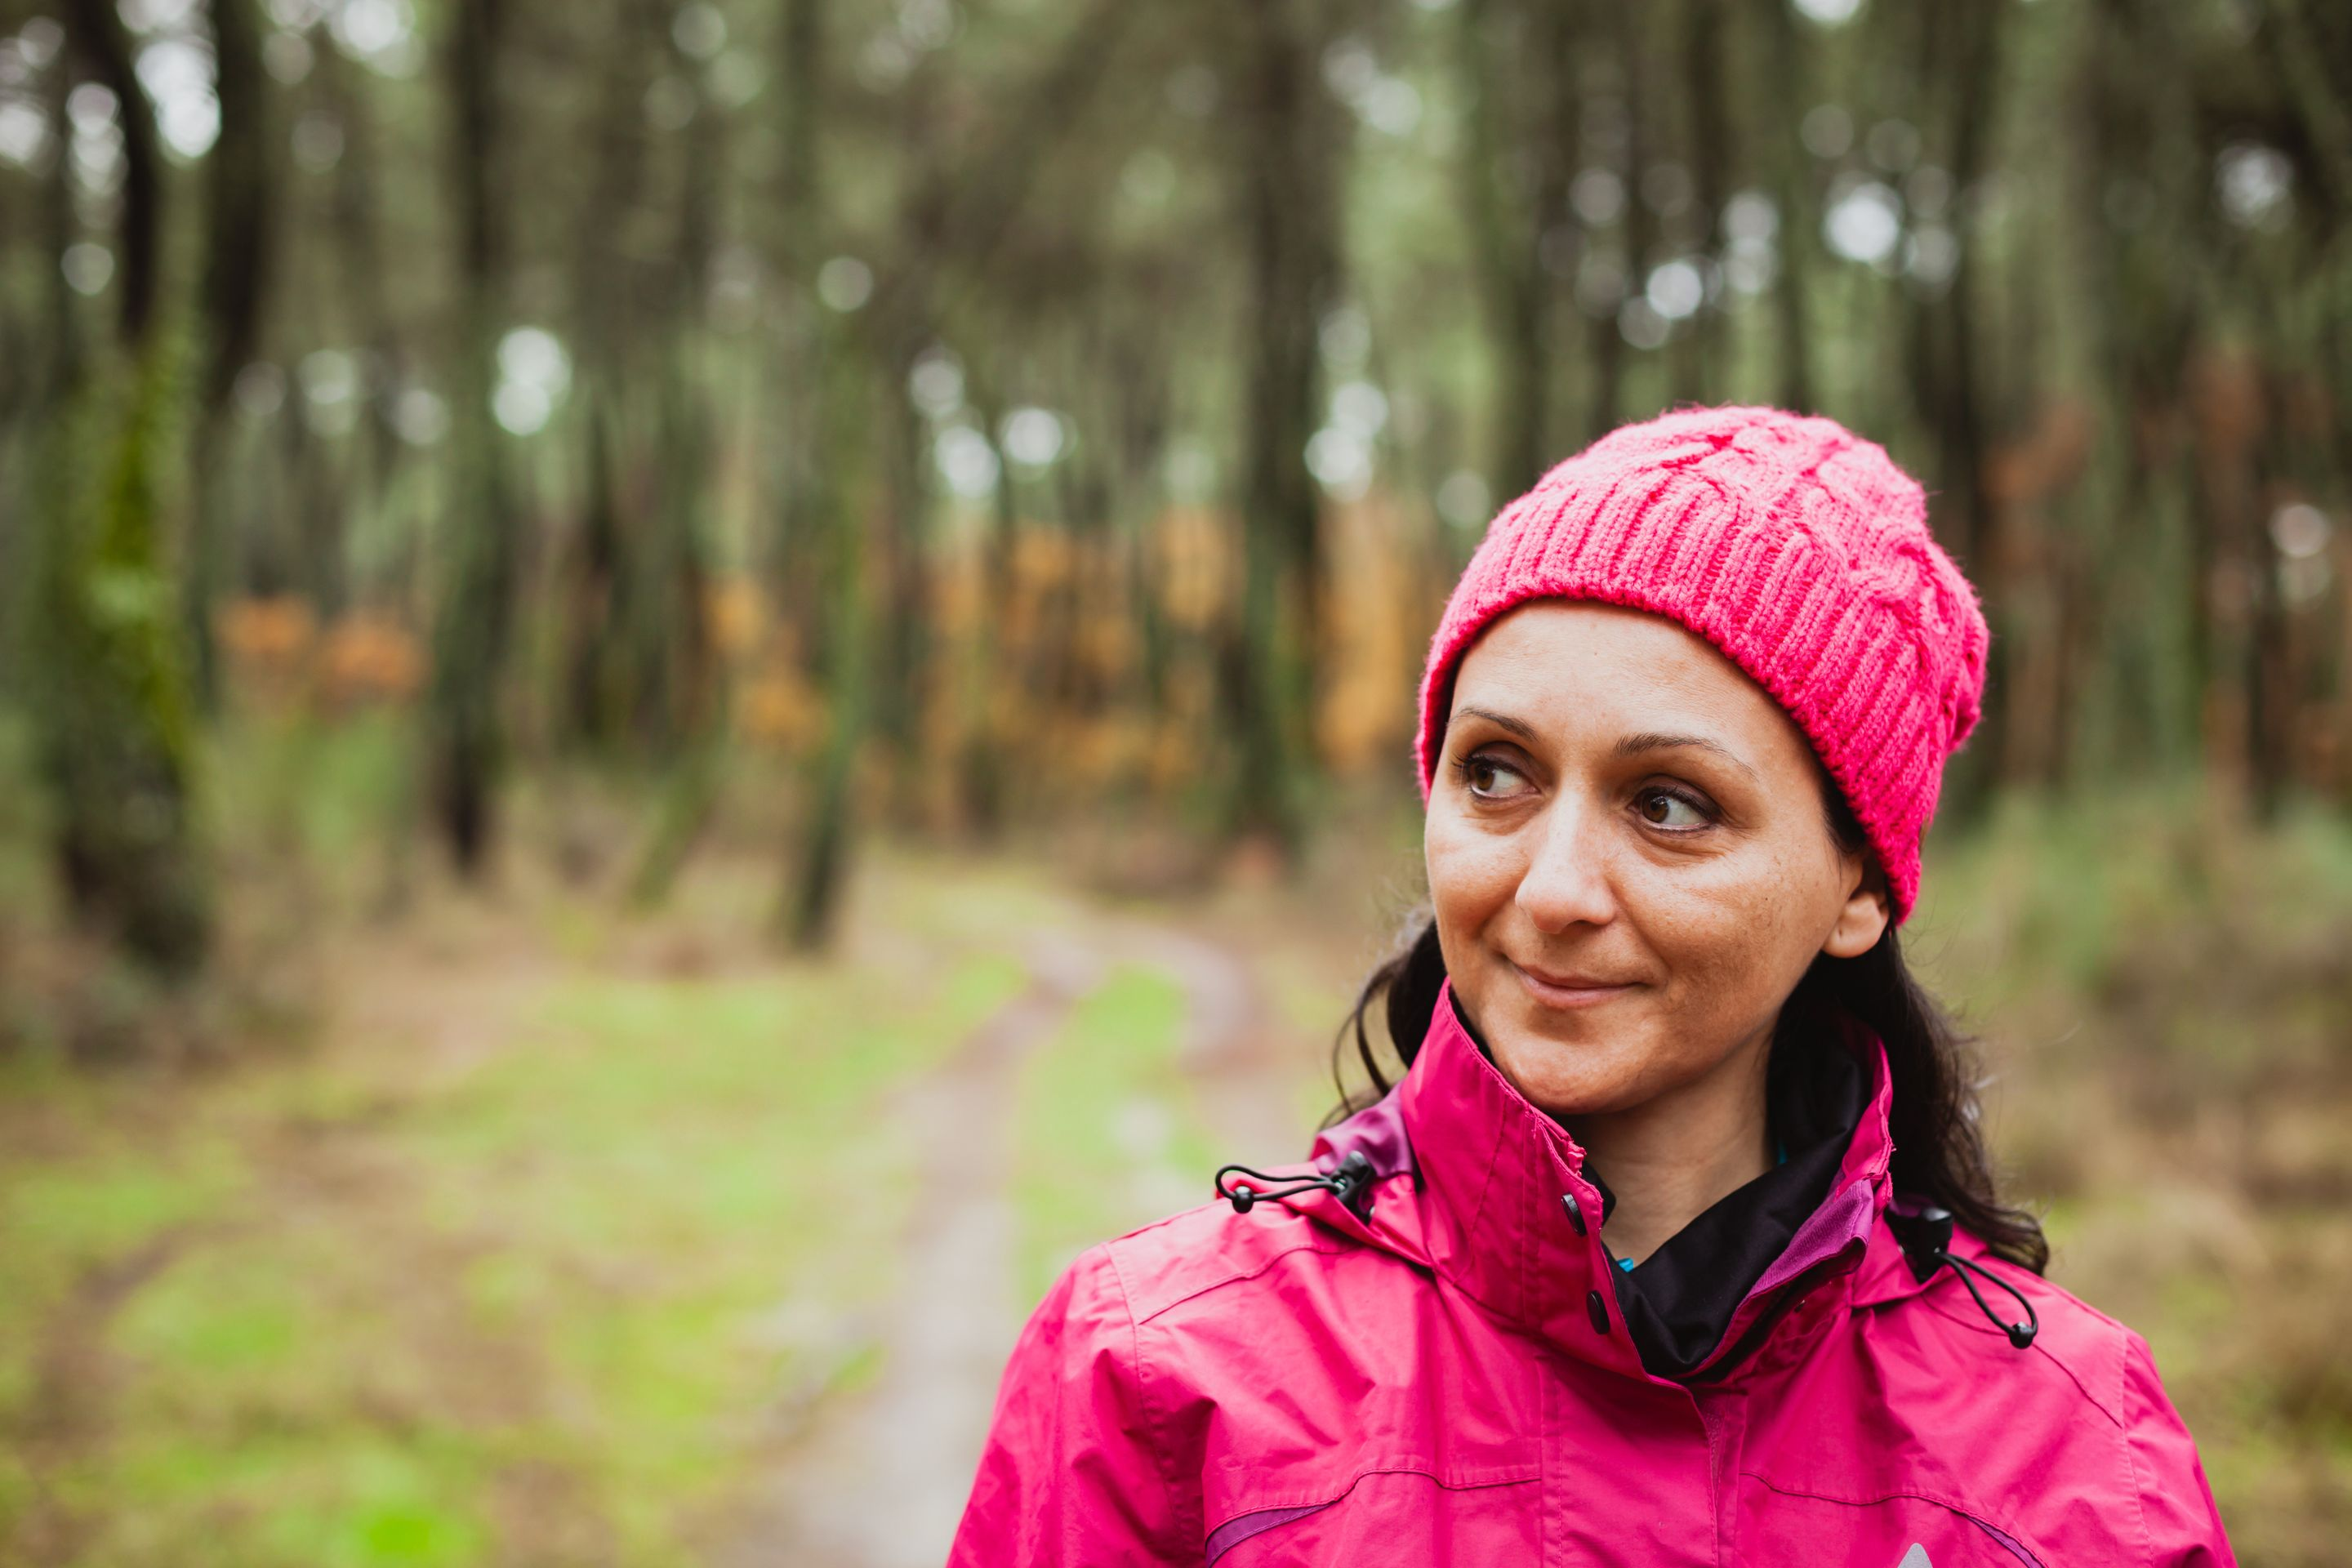 A woman walking through the woods in a pink rain jacket and knit hat